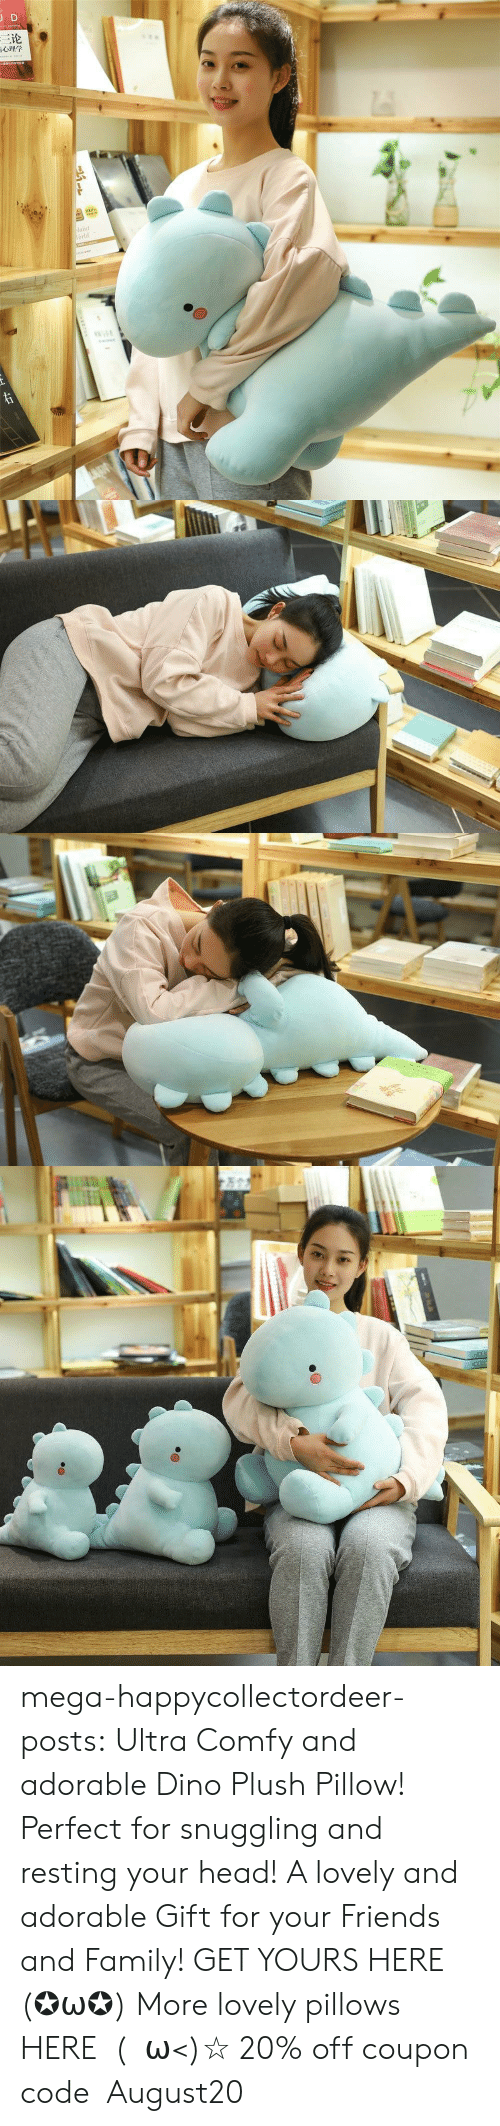 Family, Friends, and Head: JD  三论  laint  orld  TDNAR  ww.e mega-happycollectordeer-posts:  Ultra Comfy and adorable Dino Plush Pillow! Perfect for snuggling and resting your head! A lovely and adorable Gift for your Friends and Family! GET YOURS HERE (✪ω✪) More lovely pillows HERE  (・ω<)☆ 20% off coupon code:August20